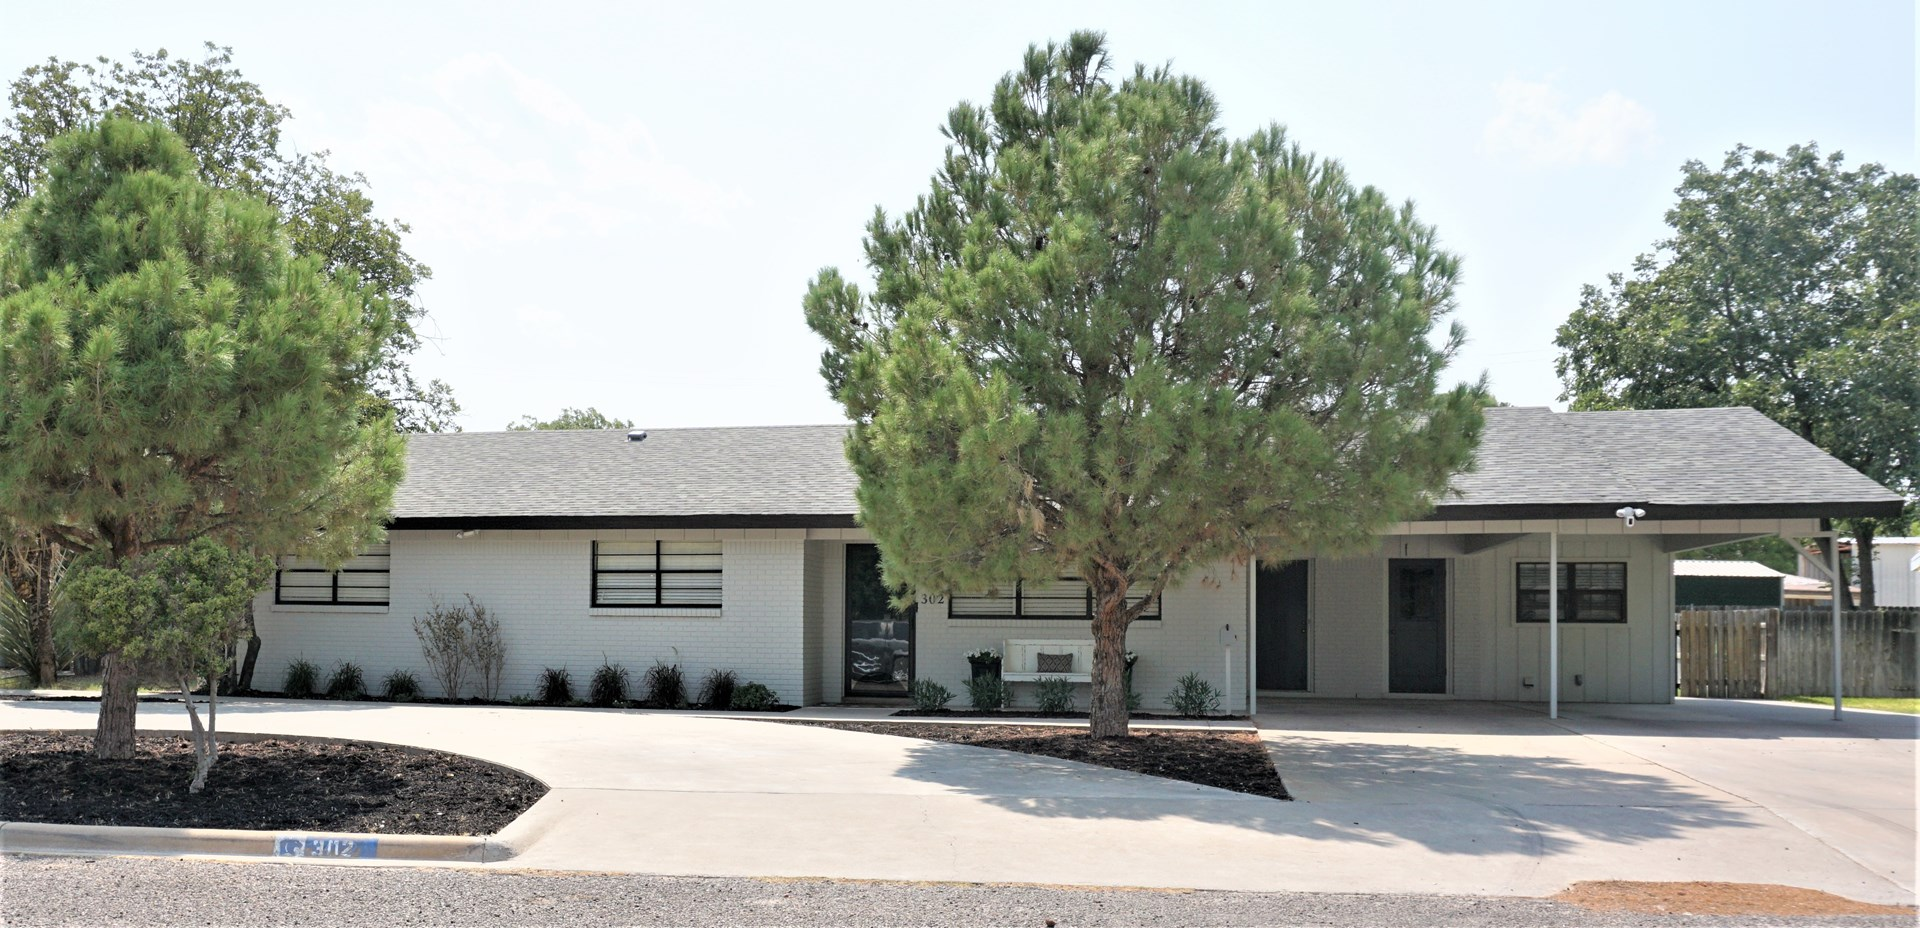 4-Bedroom Modern Home for Sale in Fort Stockton, TX